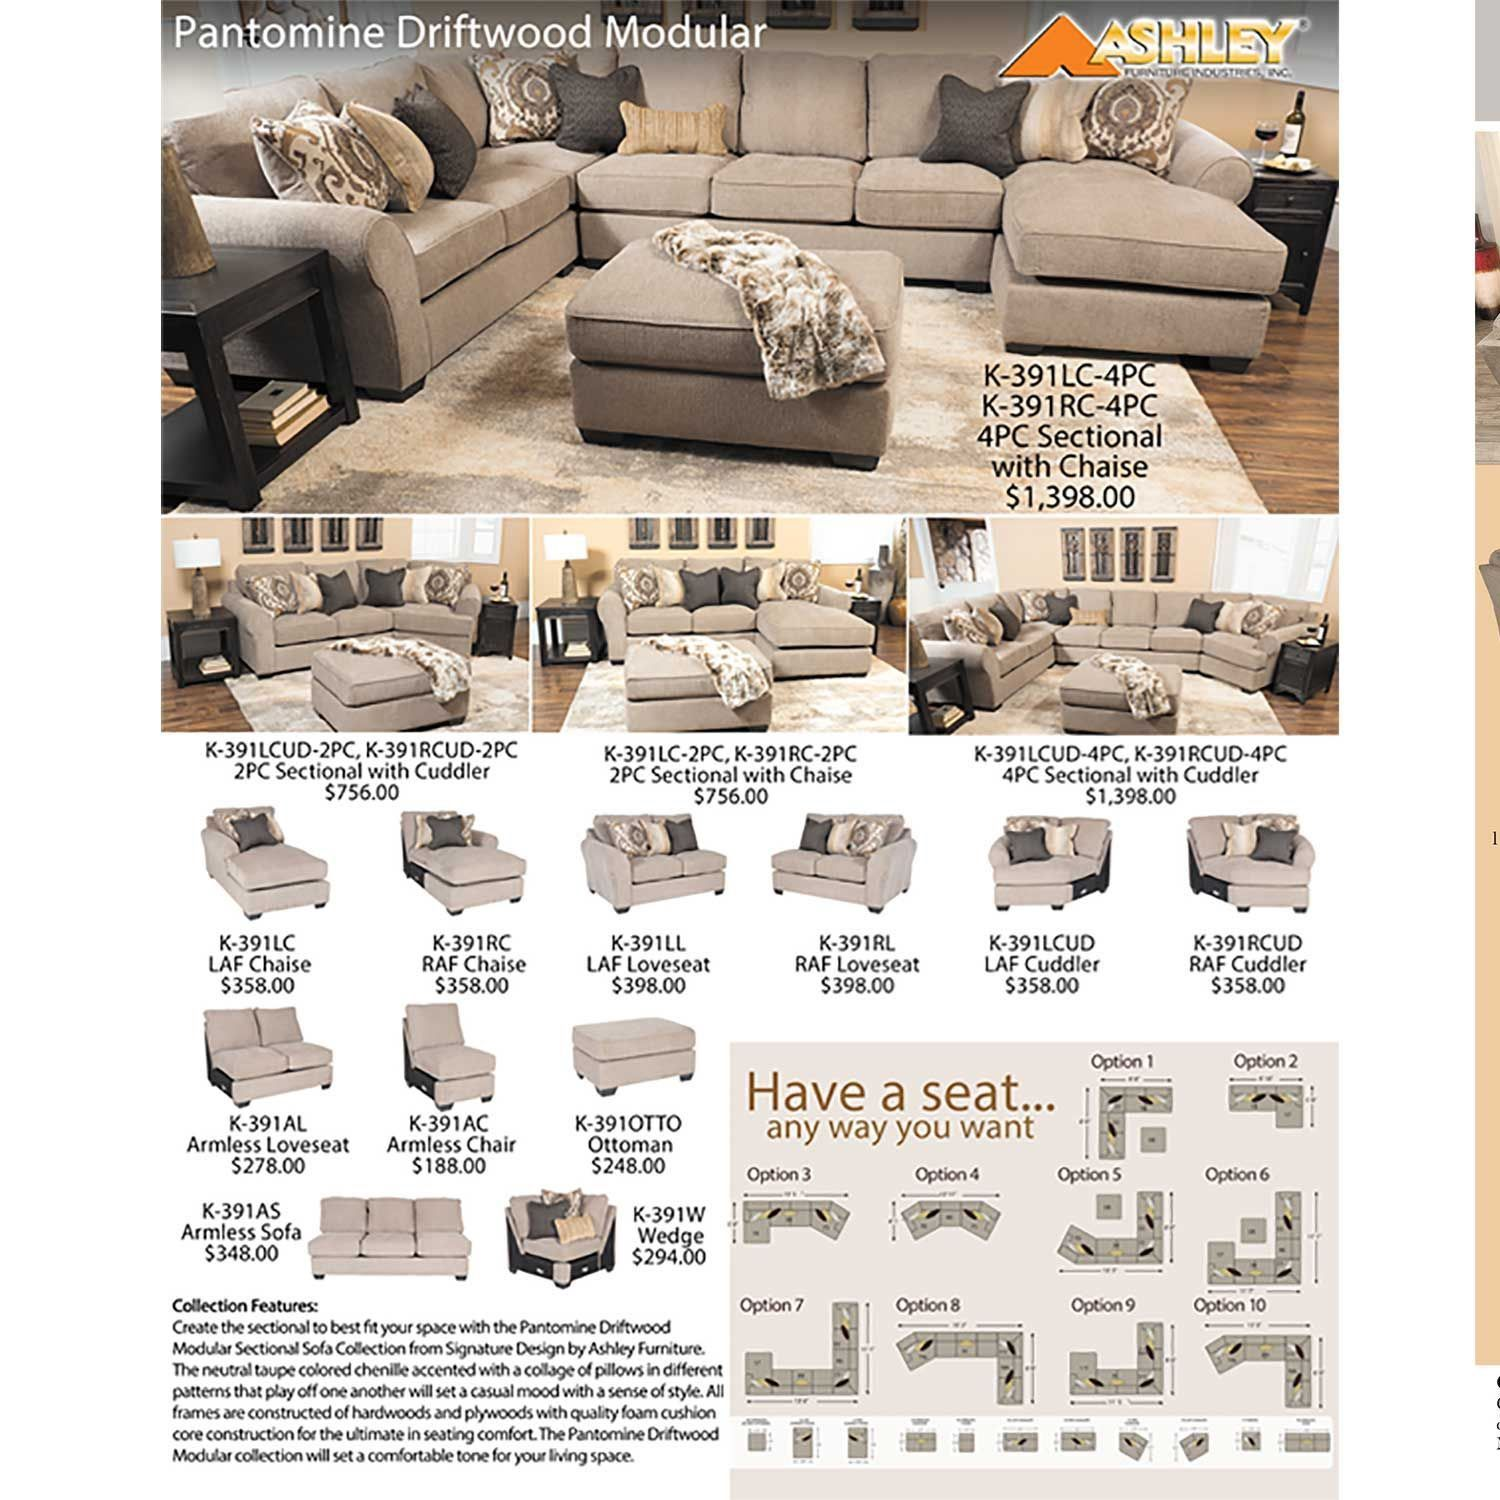 Pantomine 4PC with RAF Cuddler Sectional by Ashley Furniture is